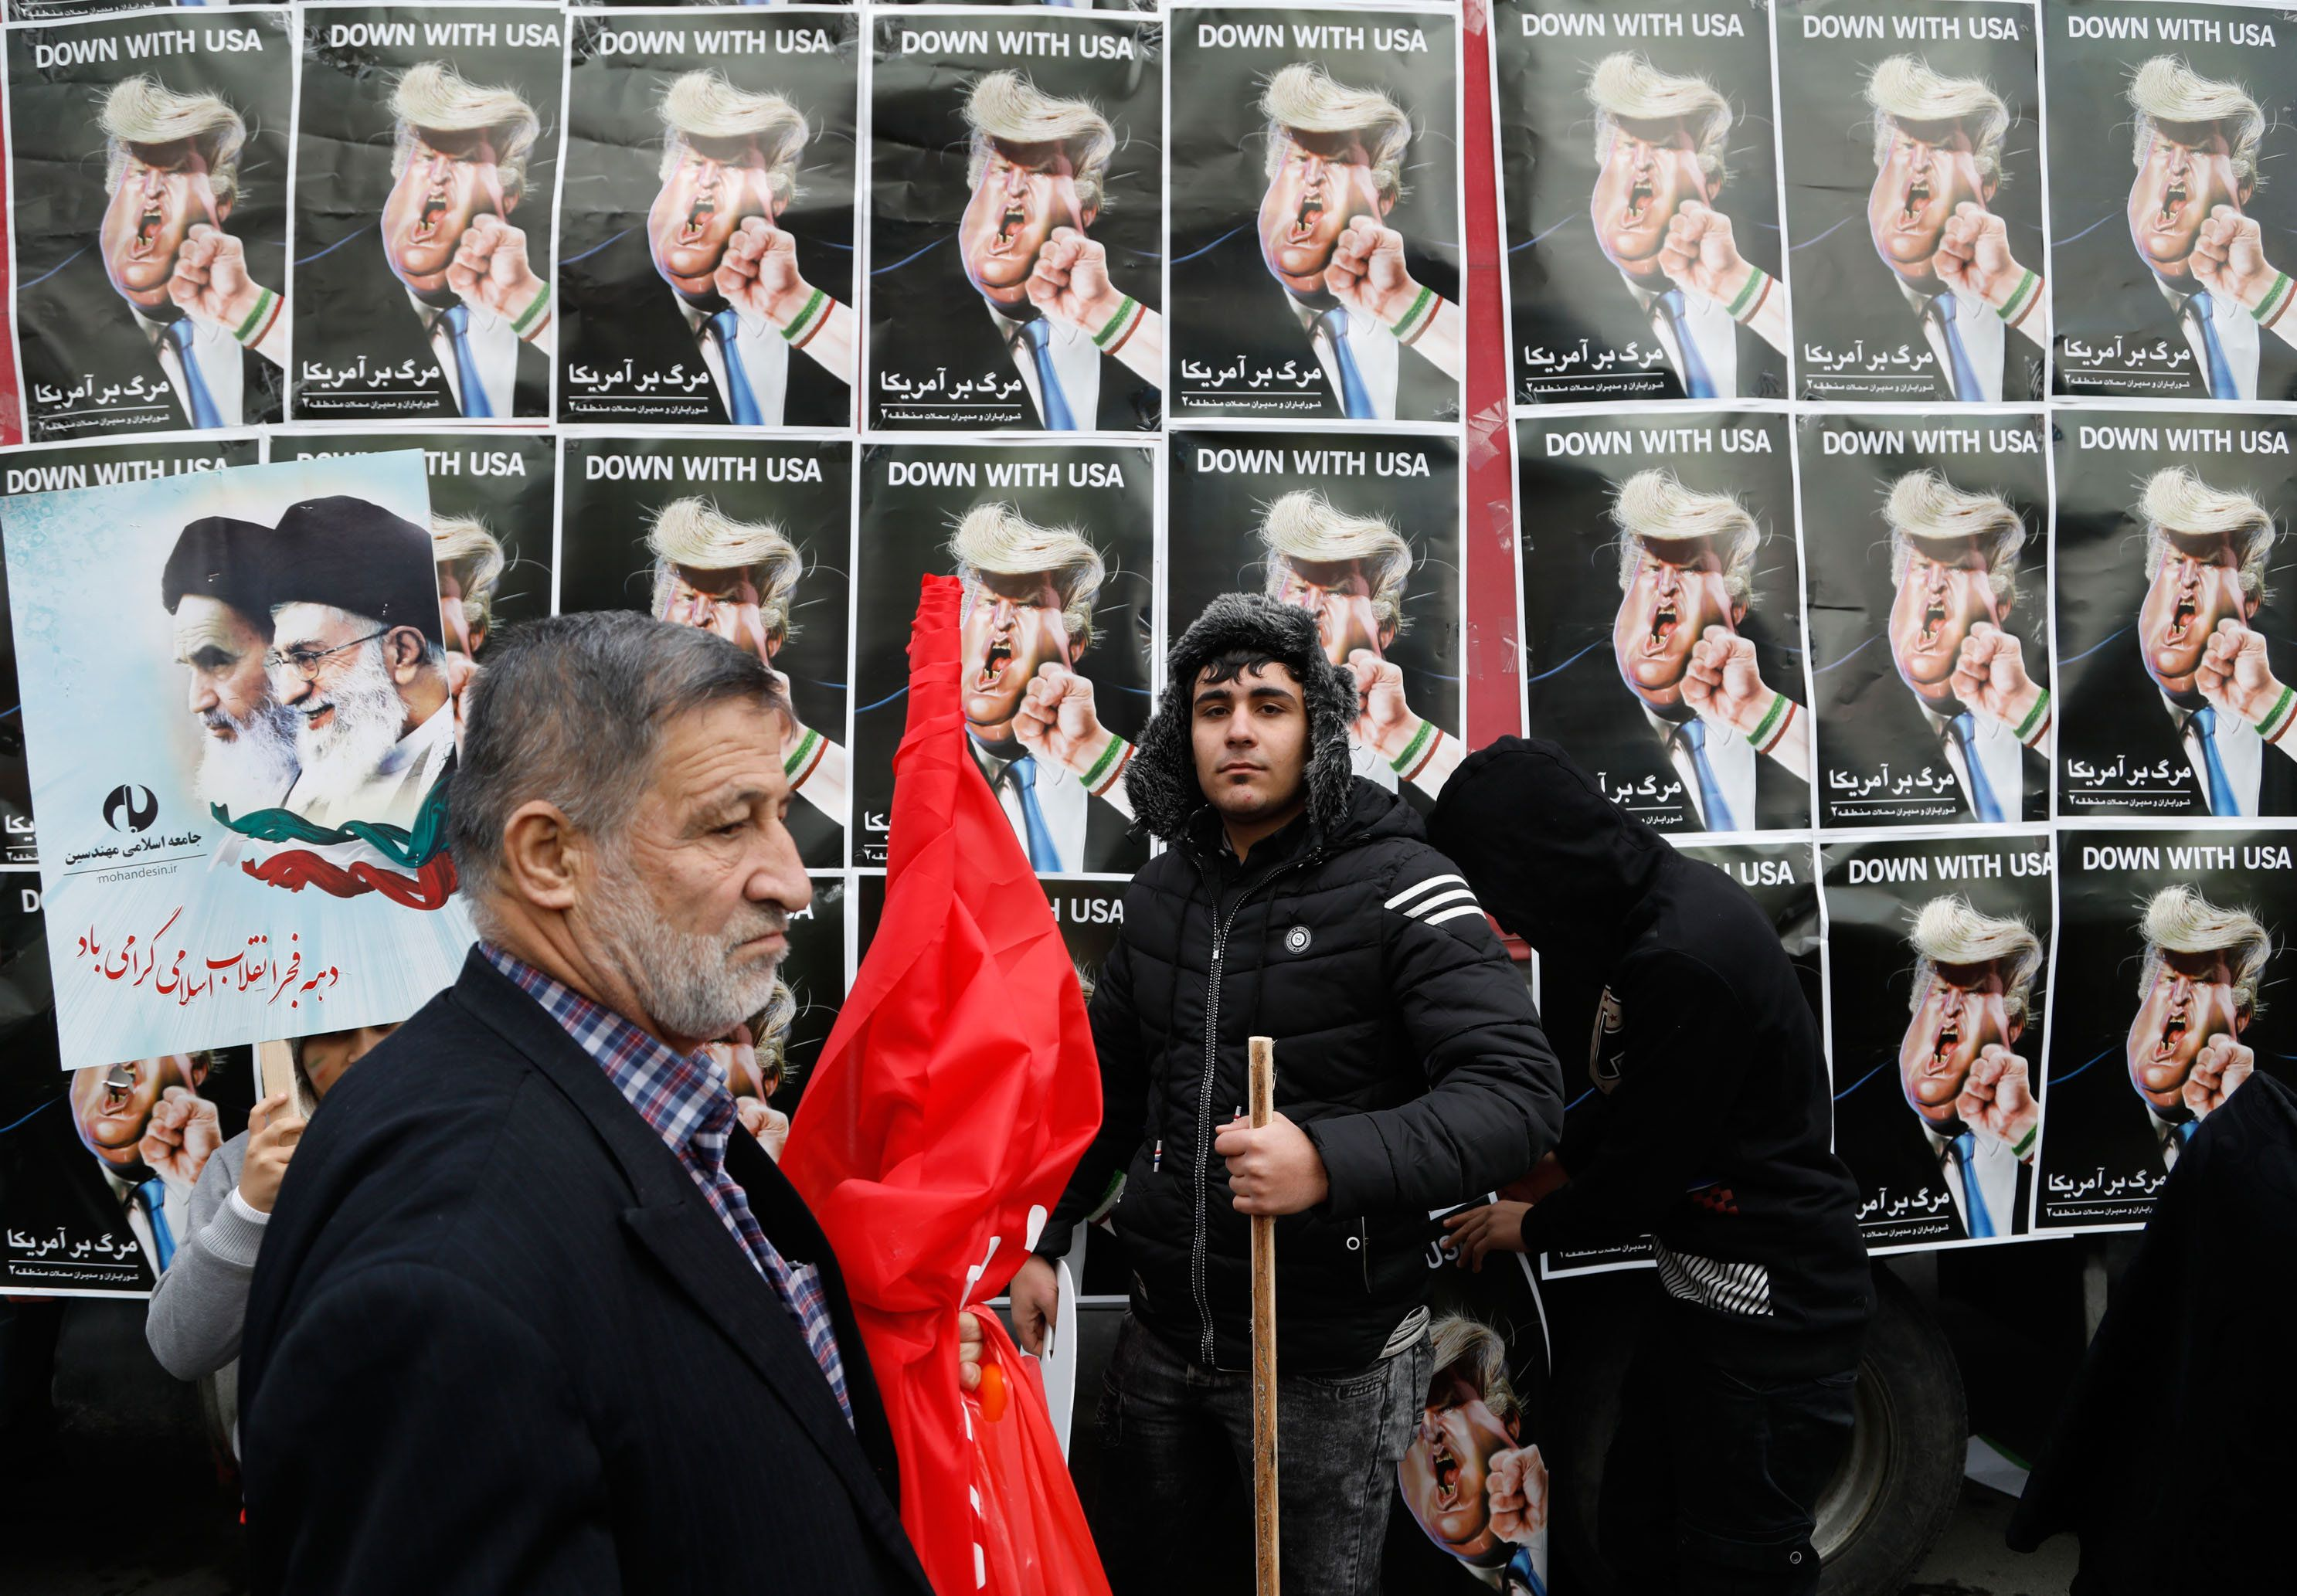 An Iranian man stands in front of placards showing a caricature of US President Donald Trump being punched by a hand wearing a bracelet of the Iranian flag during a rally marking the anniversary of the 1979 Islamic revolution on February 10, 2017, in the capital Tehran. Millions of Iranians marched on the anniversary day in what President Hassan Rouhani described as a response to the new US administration and a rejection of 'threatening language'. / AFP / ATTA KENARE        (Photo credit should read ATTA KENARE/AFP/Getty Images)